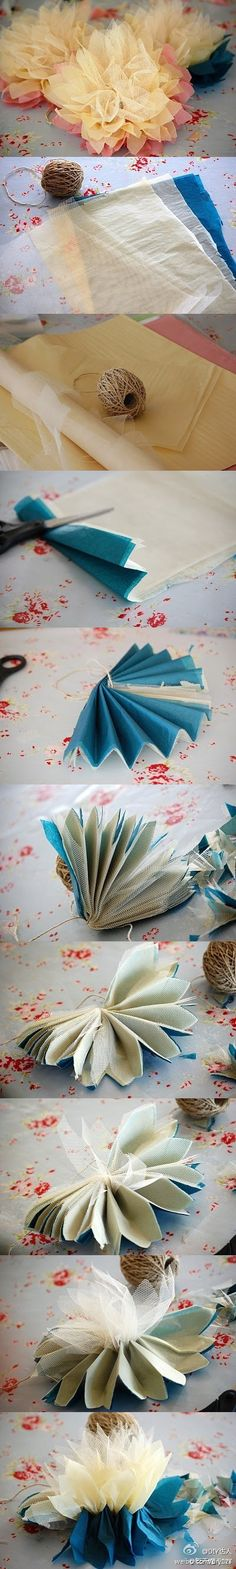 DIY fabric (or paper) flowers, I reckon this way of making DIY flowers looks so much cuter with fabrics though! Beaded Flowers, Diy Flowers, Fabric Flowers, Paper Flowers, Tulle Flowers, Tissue Flowers, Flower Diy, Tulle Poms, Lotus Flowers